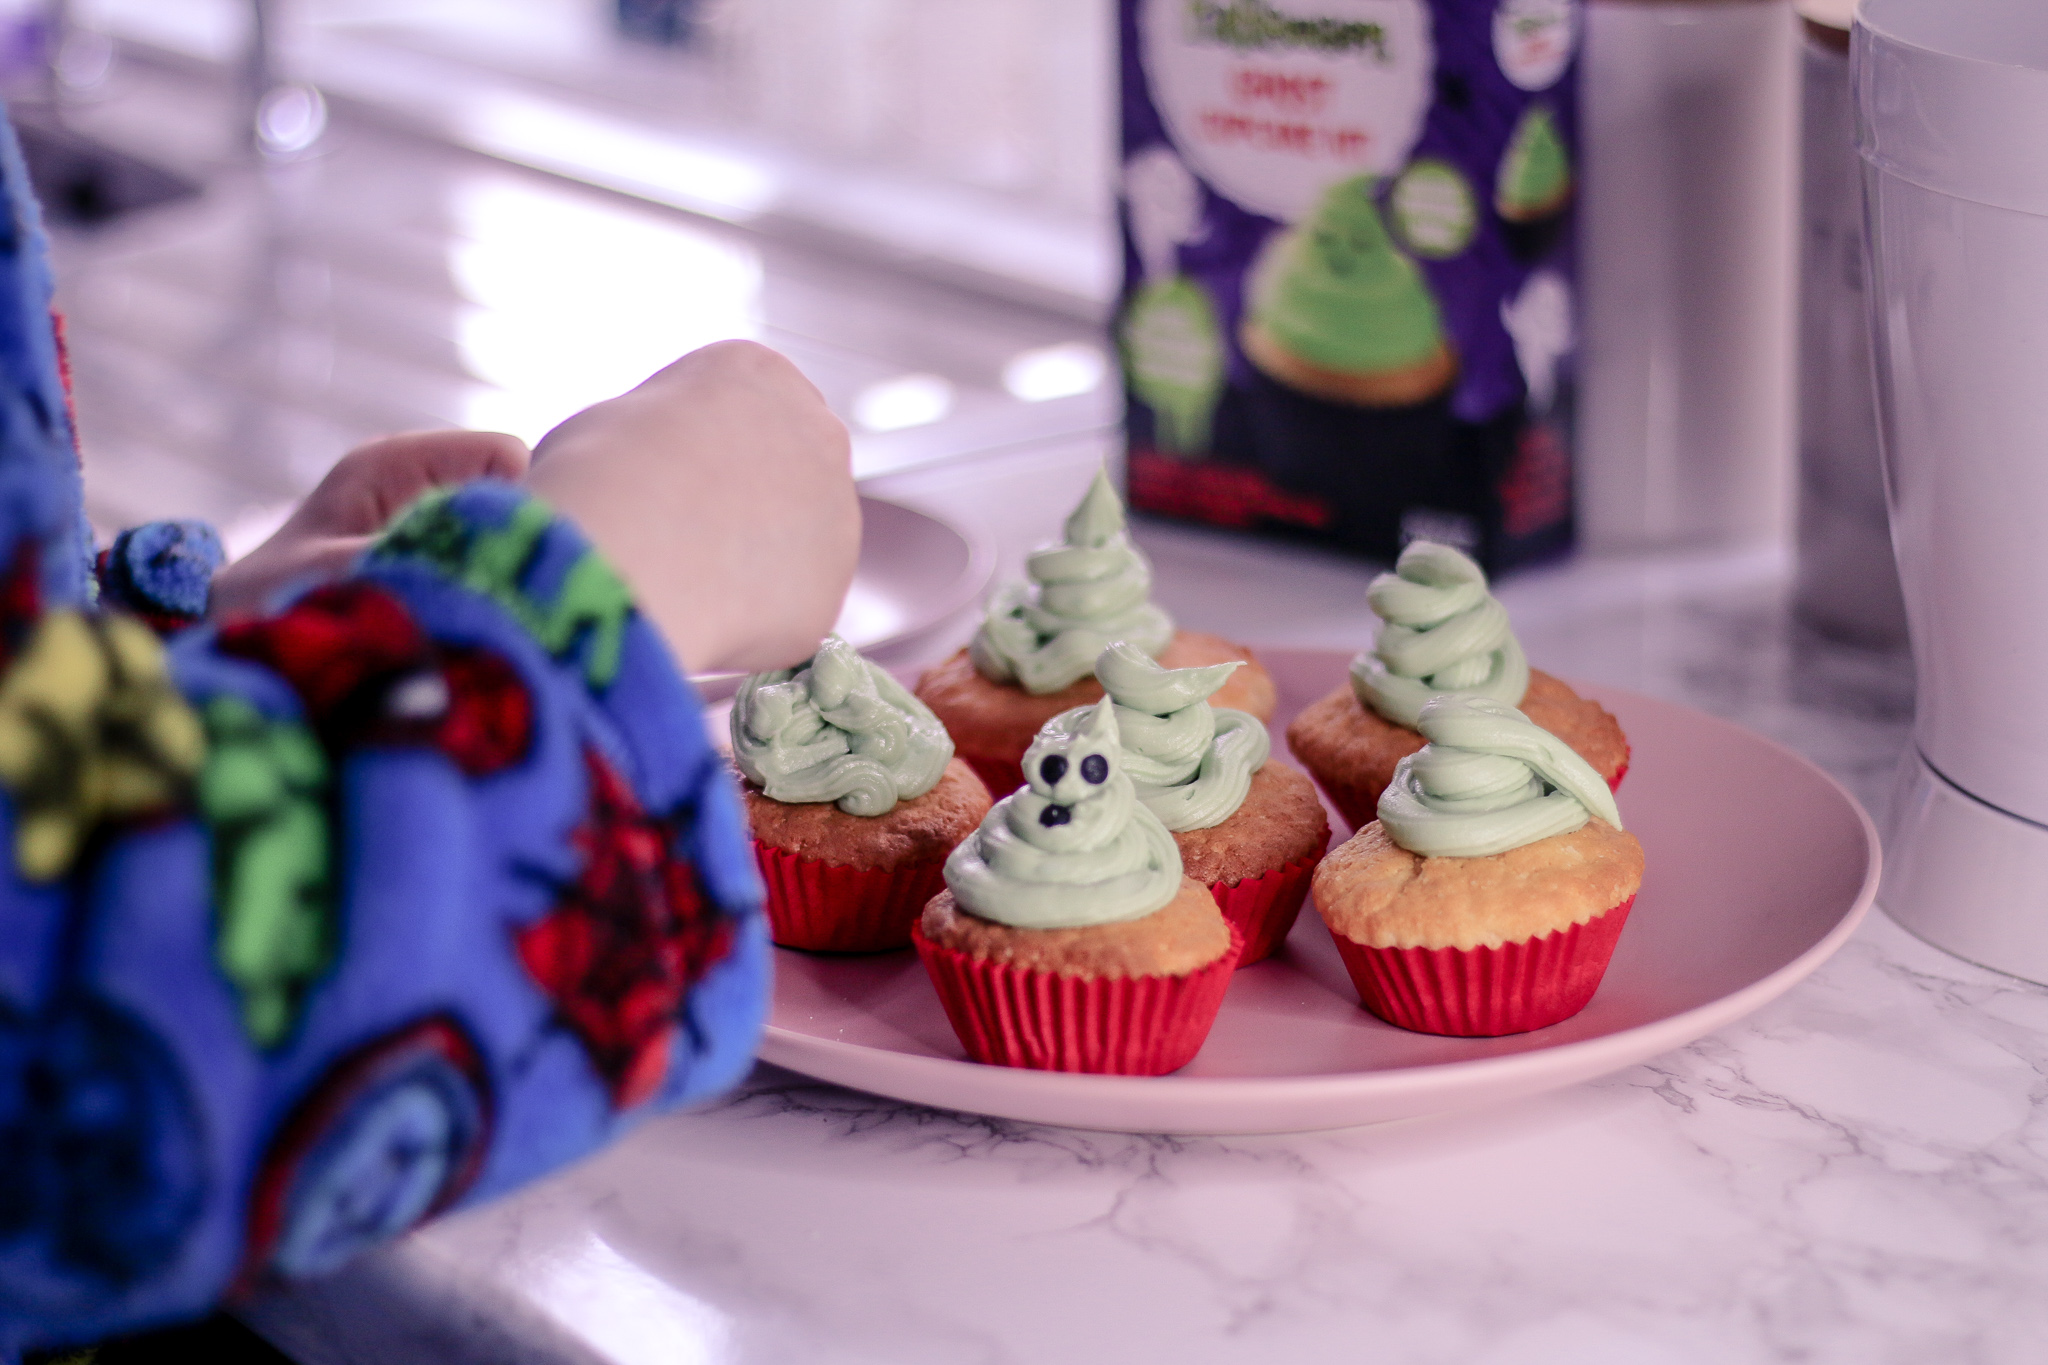 Close up photo of 6 cupcakes with green icing on a pink plate on top of a white marble kitchen worktop being decorated by a child